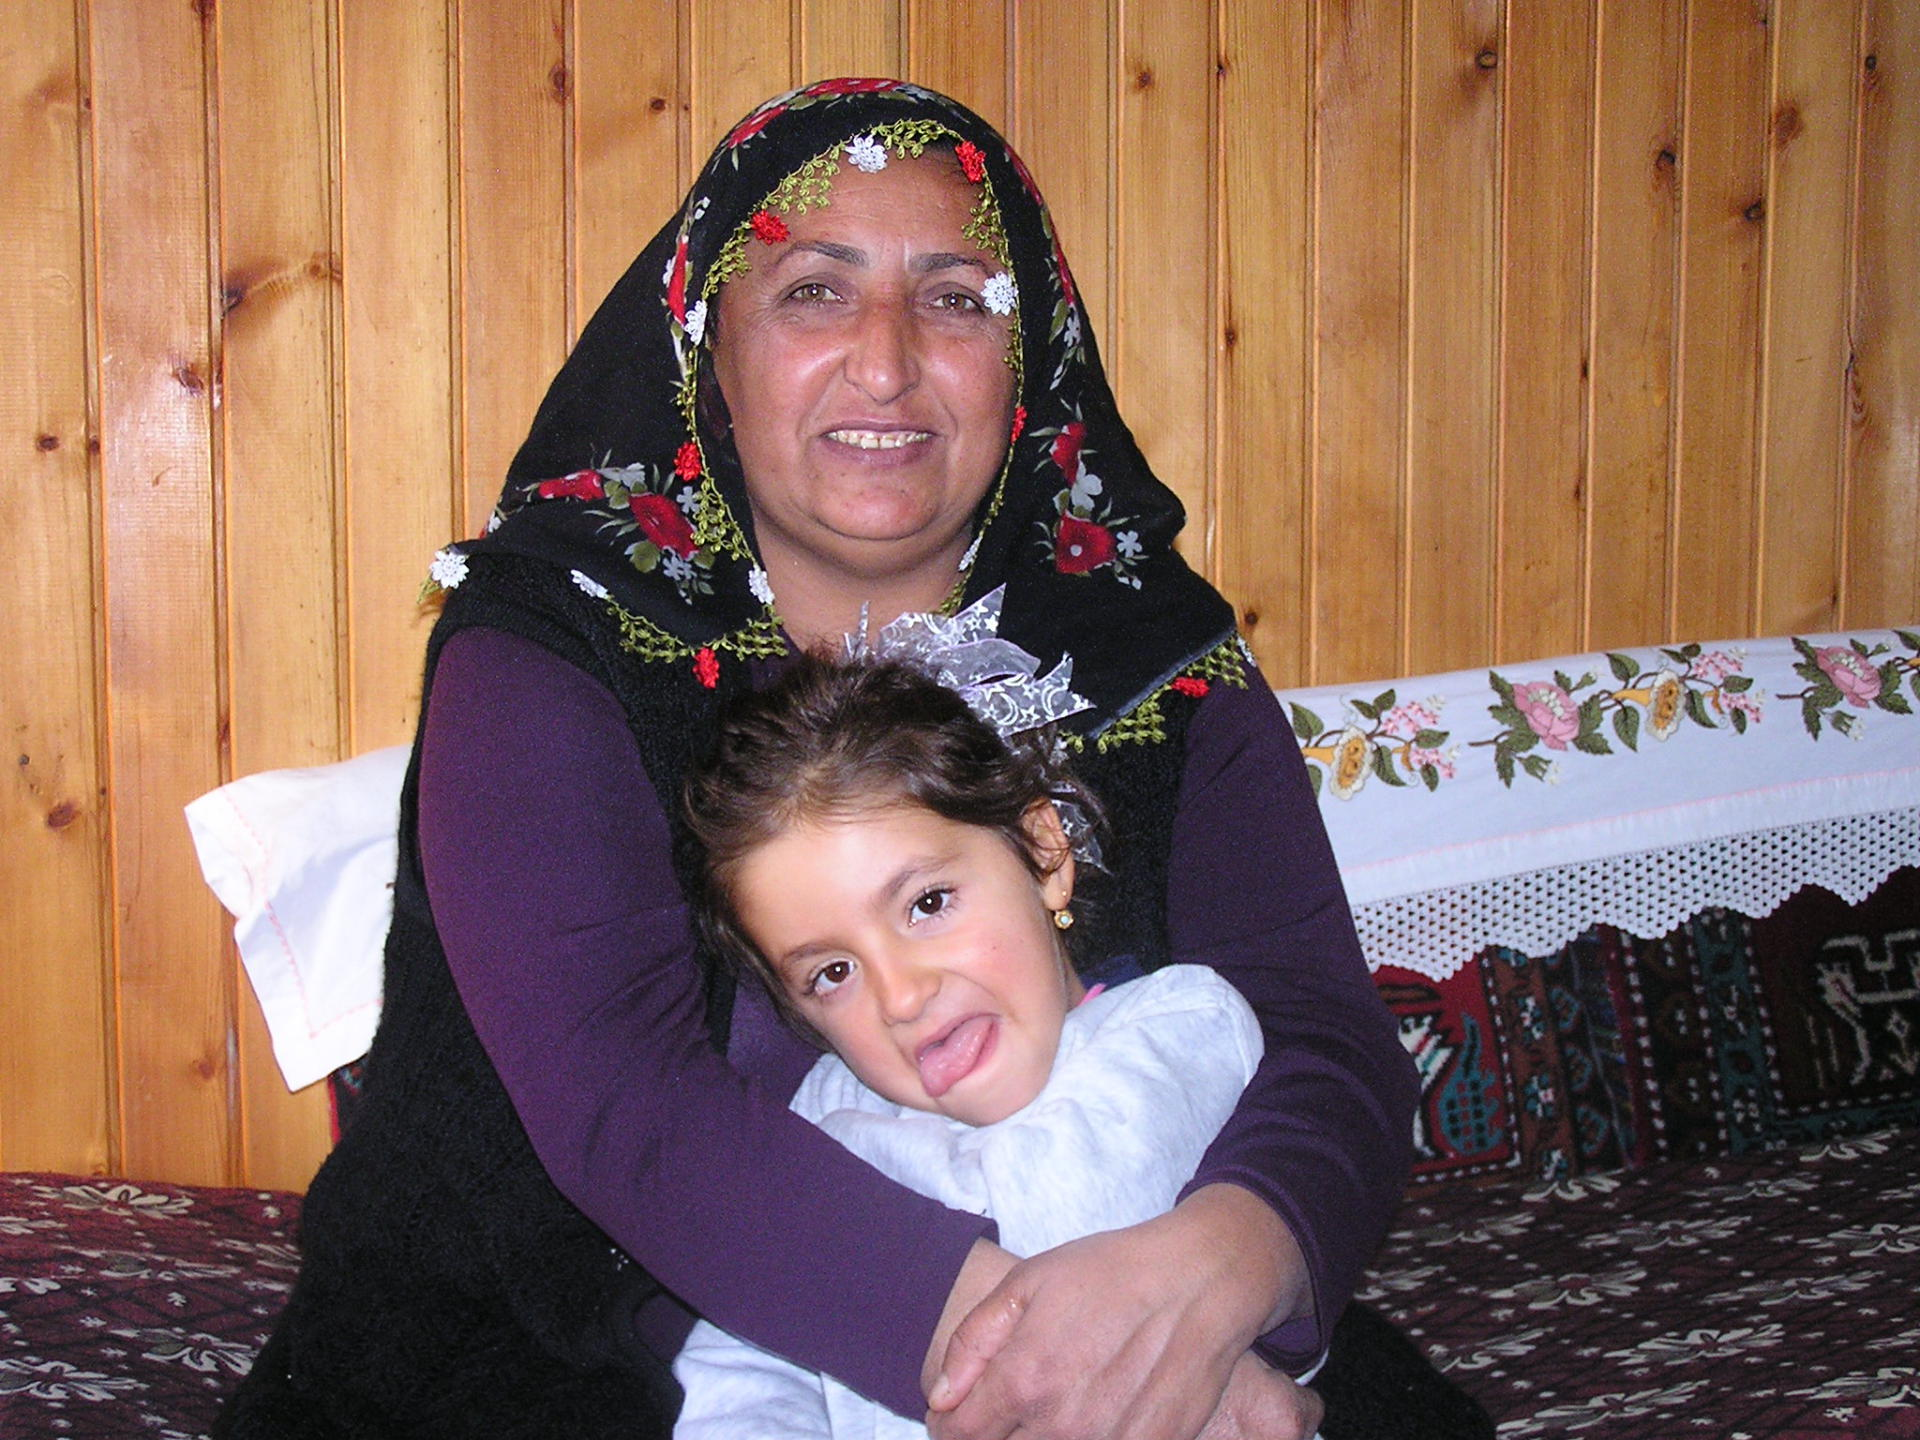 A Turkish grandmother welcomes us into her home in Göreme. Cappadocia, Turkey, chap 44, You must only to love them. http://mershon.wordpress.com